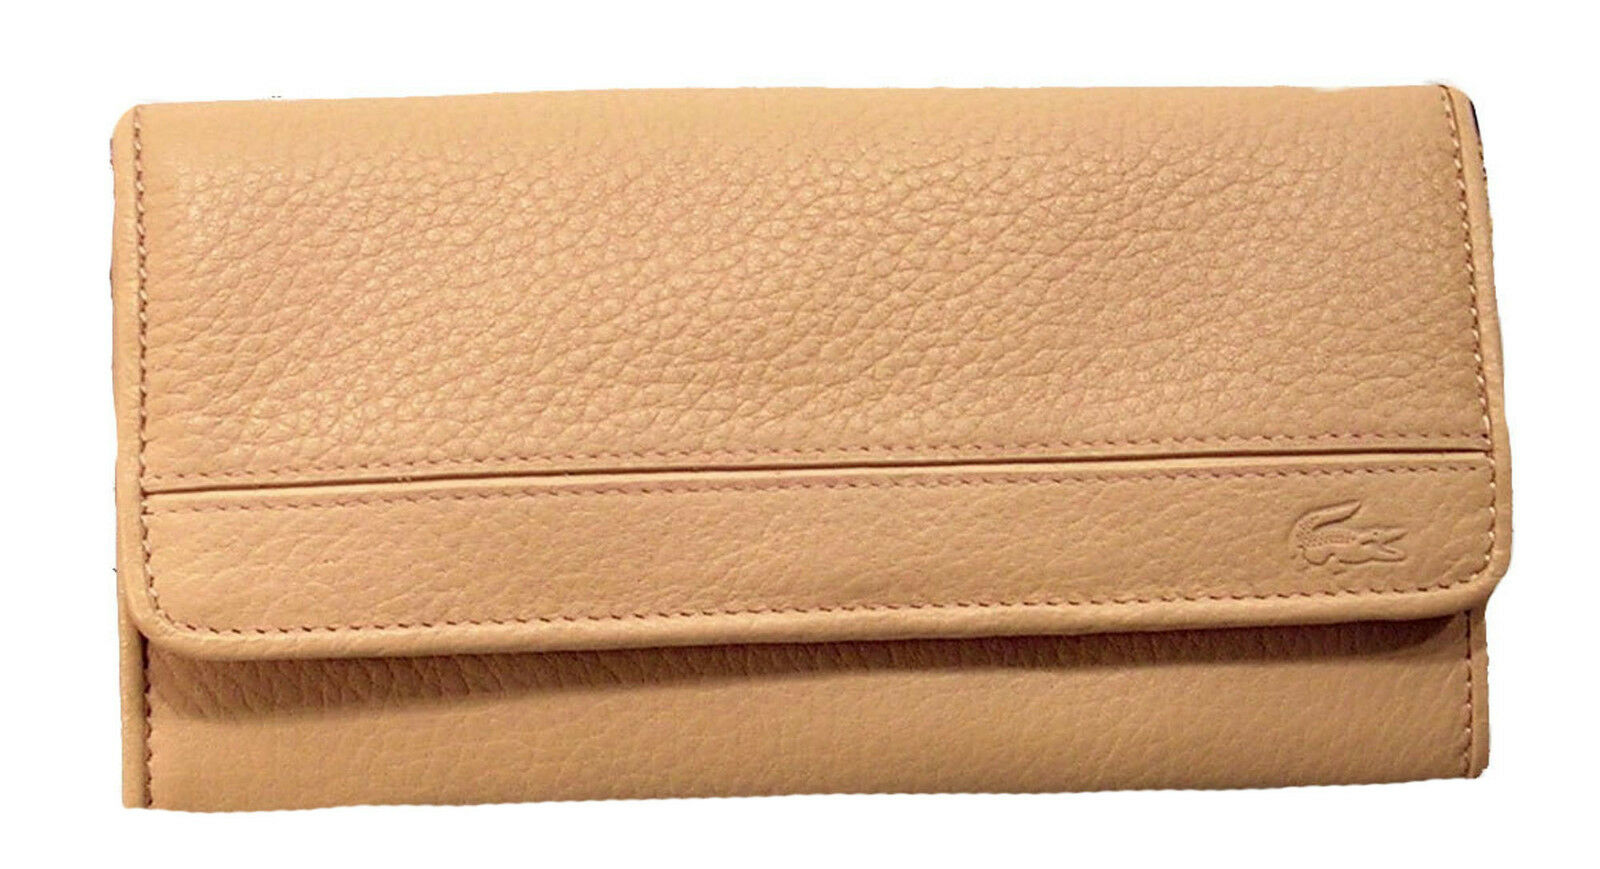 New Authentic Vintage LACOSTE Womens Leather PURSE WALLET Palio 10 Cream